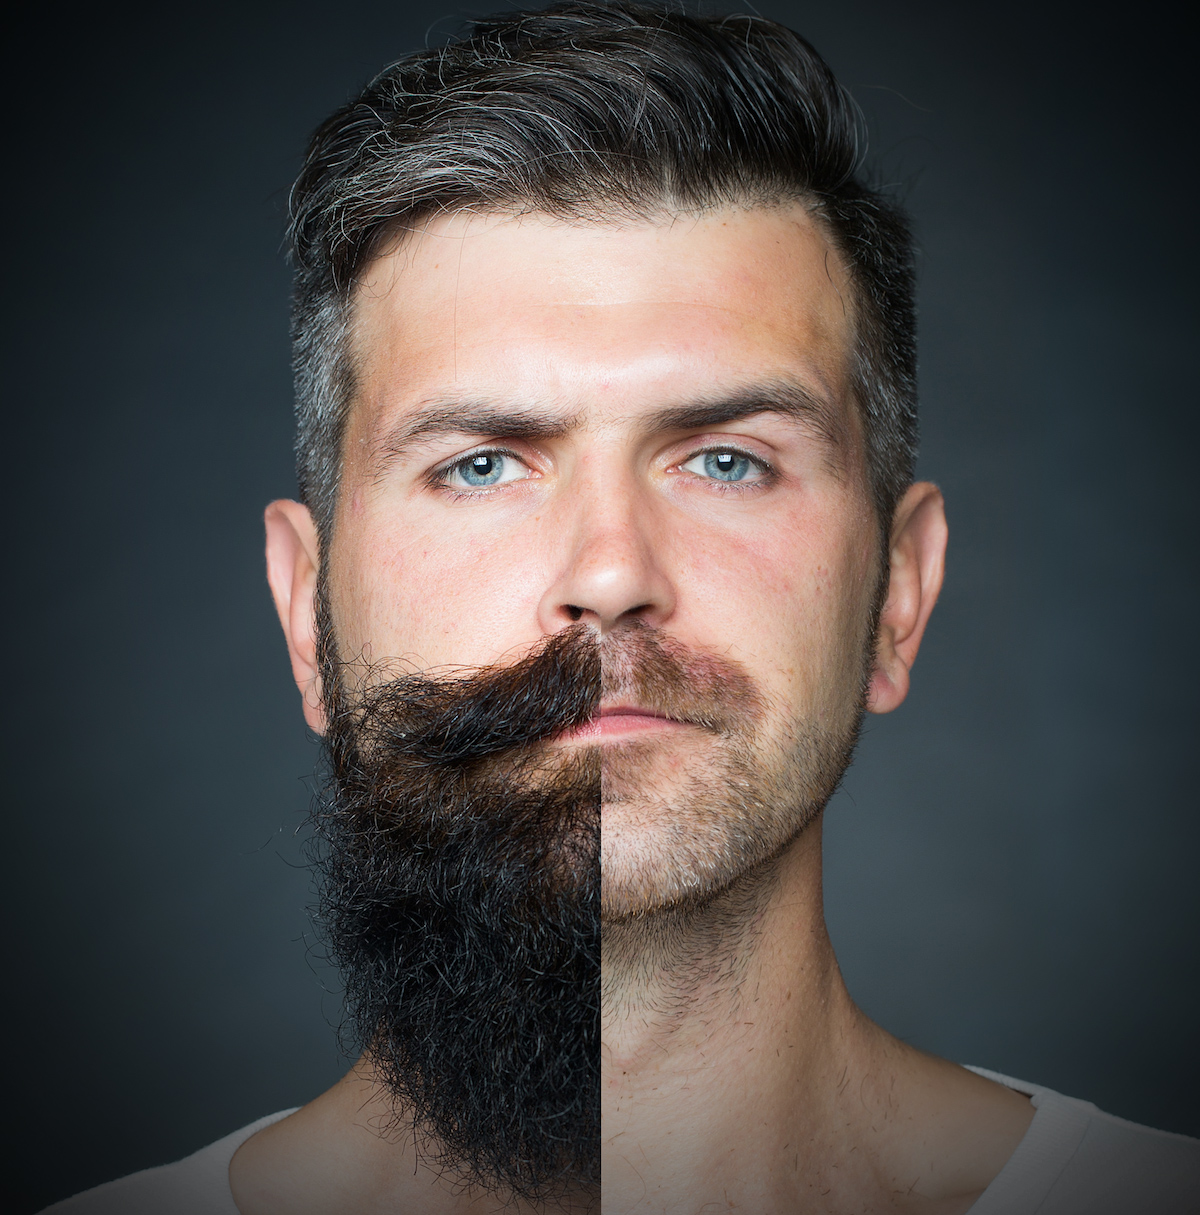 Top 4 Beard Trends 2018 Beard Styles Turning Heads In The